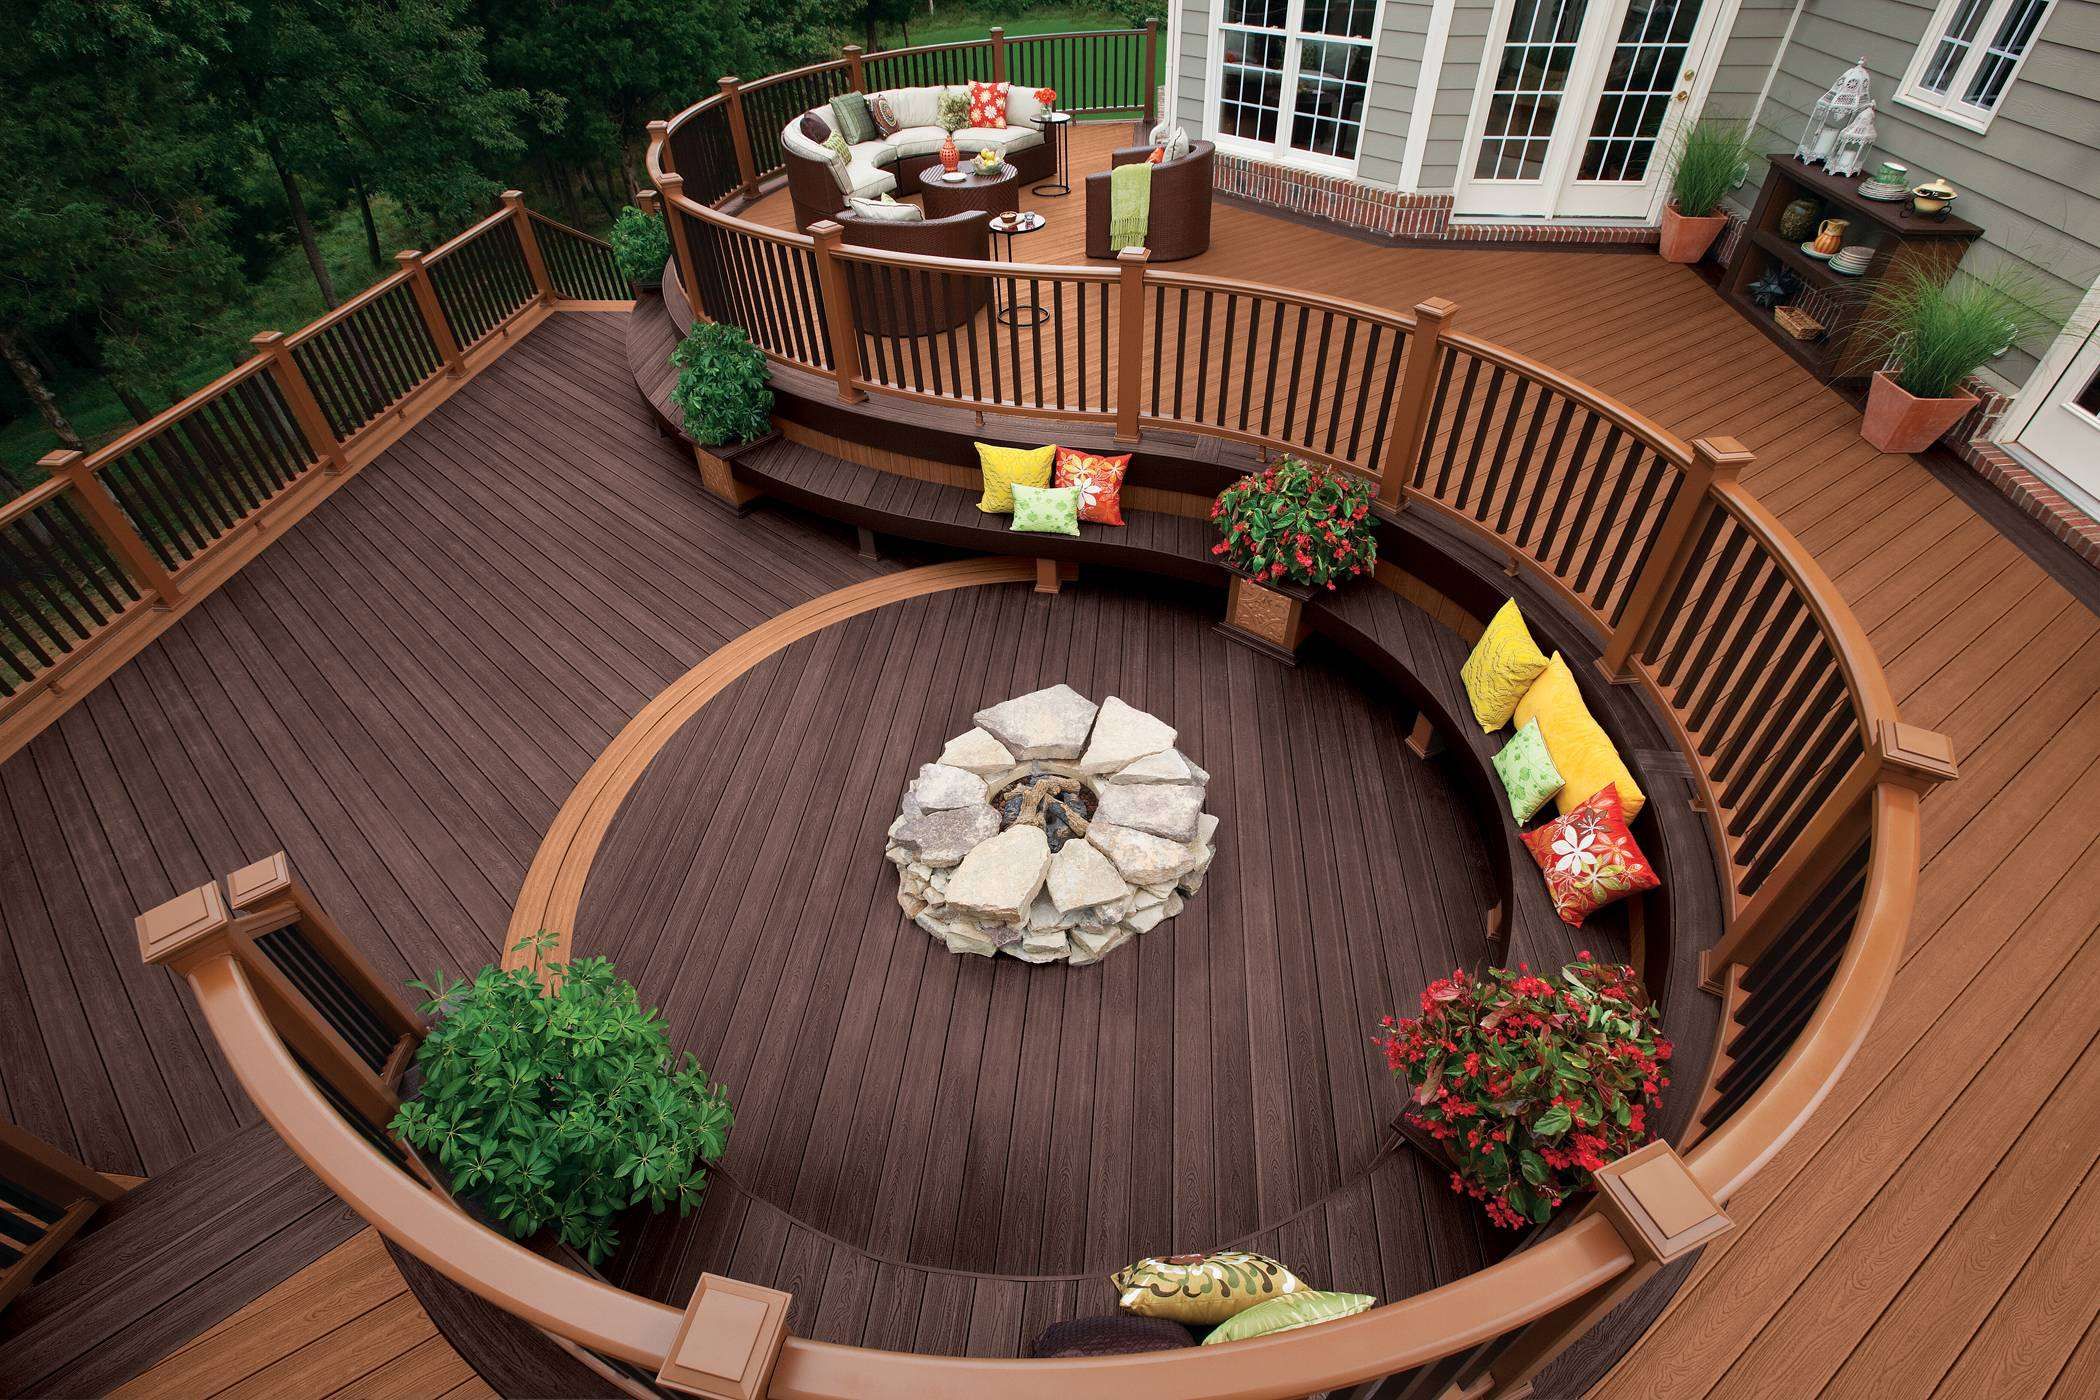 21.SIMPHOME.COM A unique deck design ideas for your client throughout backyard deck ideas